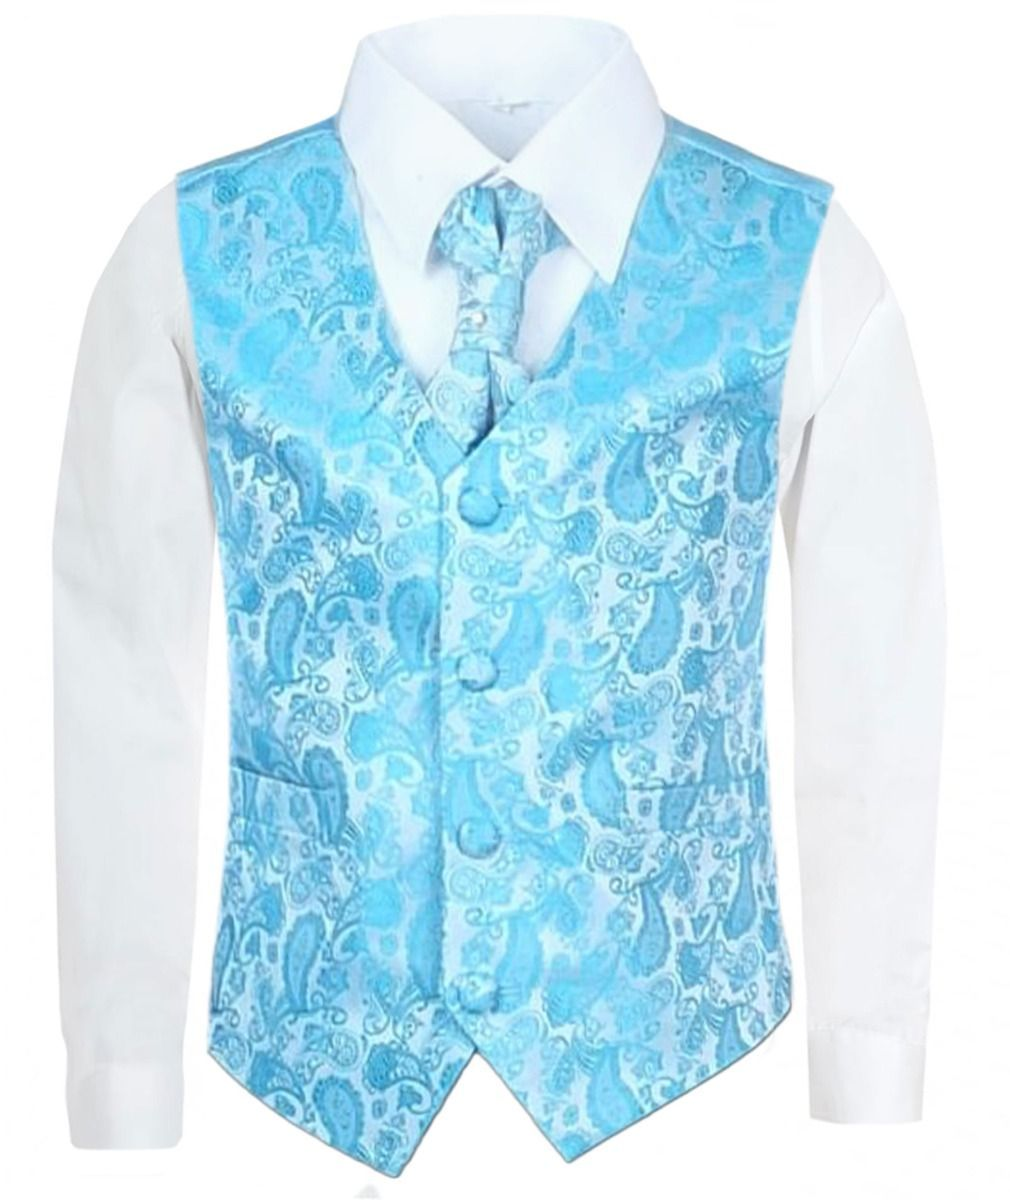 2b1b9e8daa9b This ultra chic four piece boys waistcoat suit is made of microfiber giving  comfort and ease without compromising on quality. With its crisp white  shirt, ...